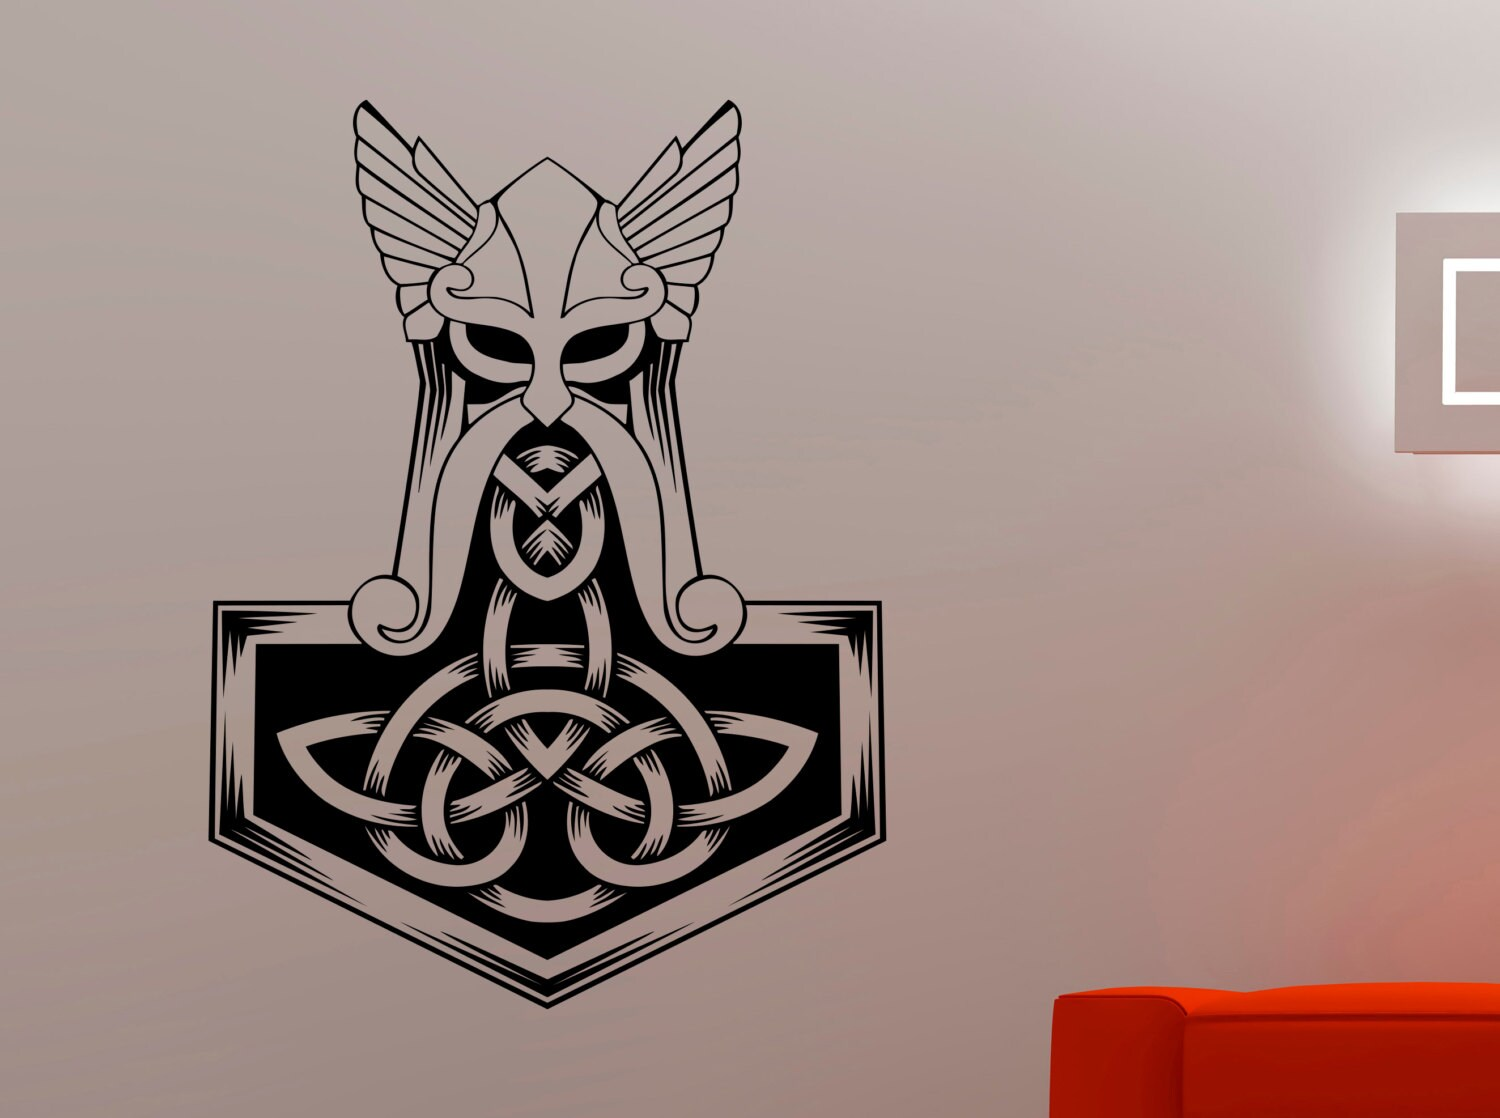 Thors Hammer Wall Sticker Vinyl Decal Home Interior Etsy